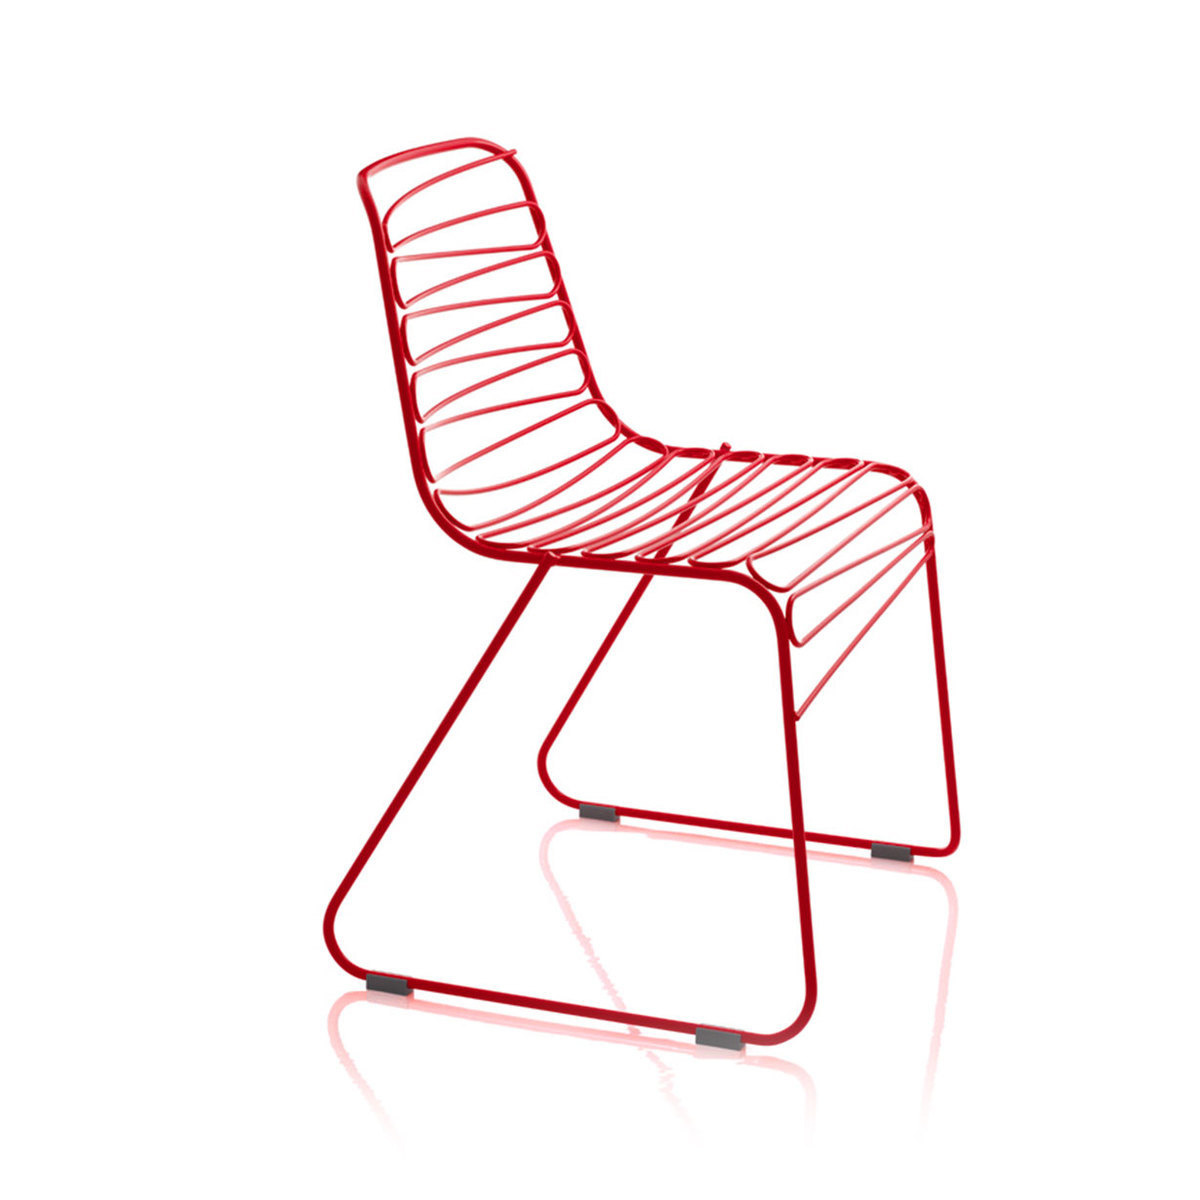 Flux chair by Magis  LOVEThESIGN